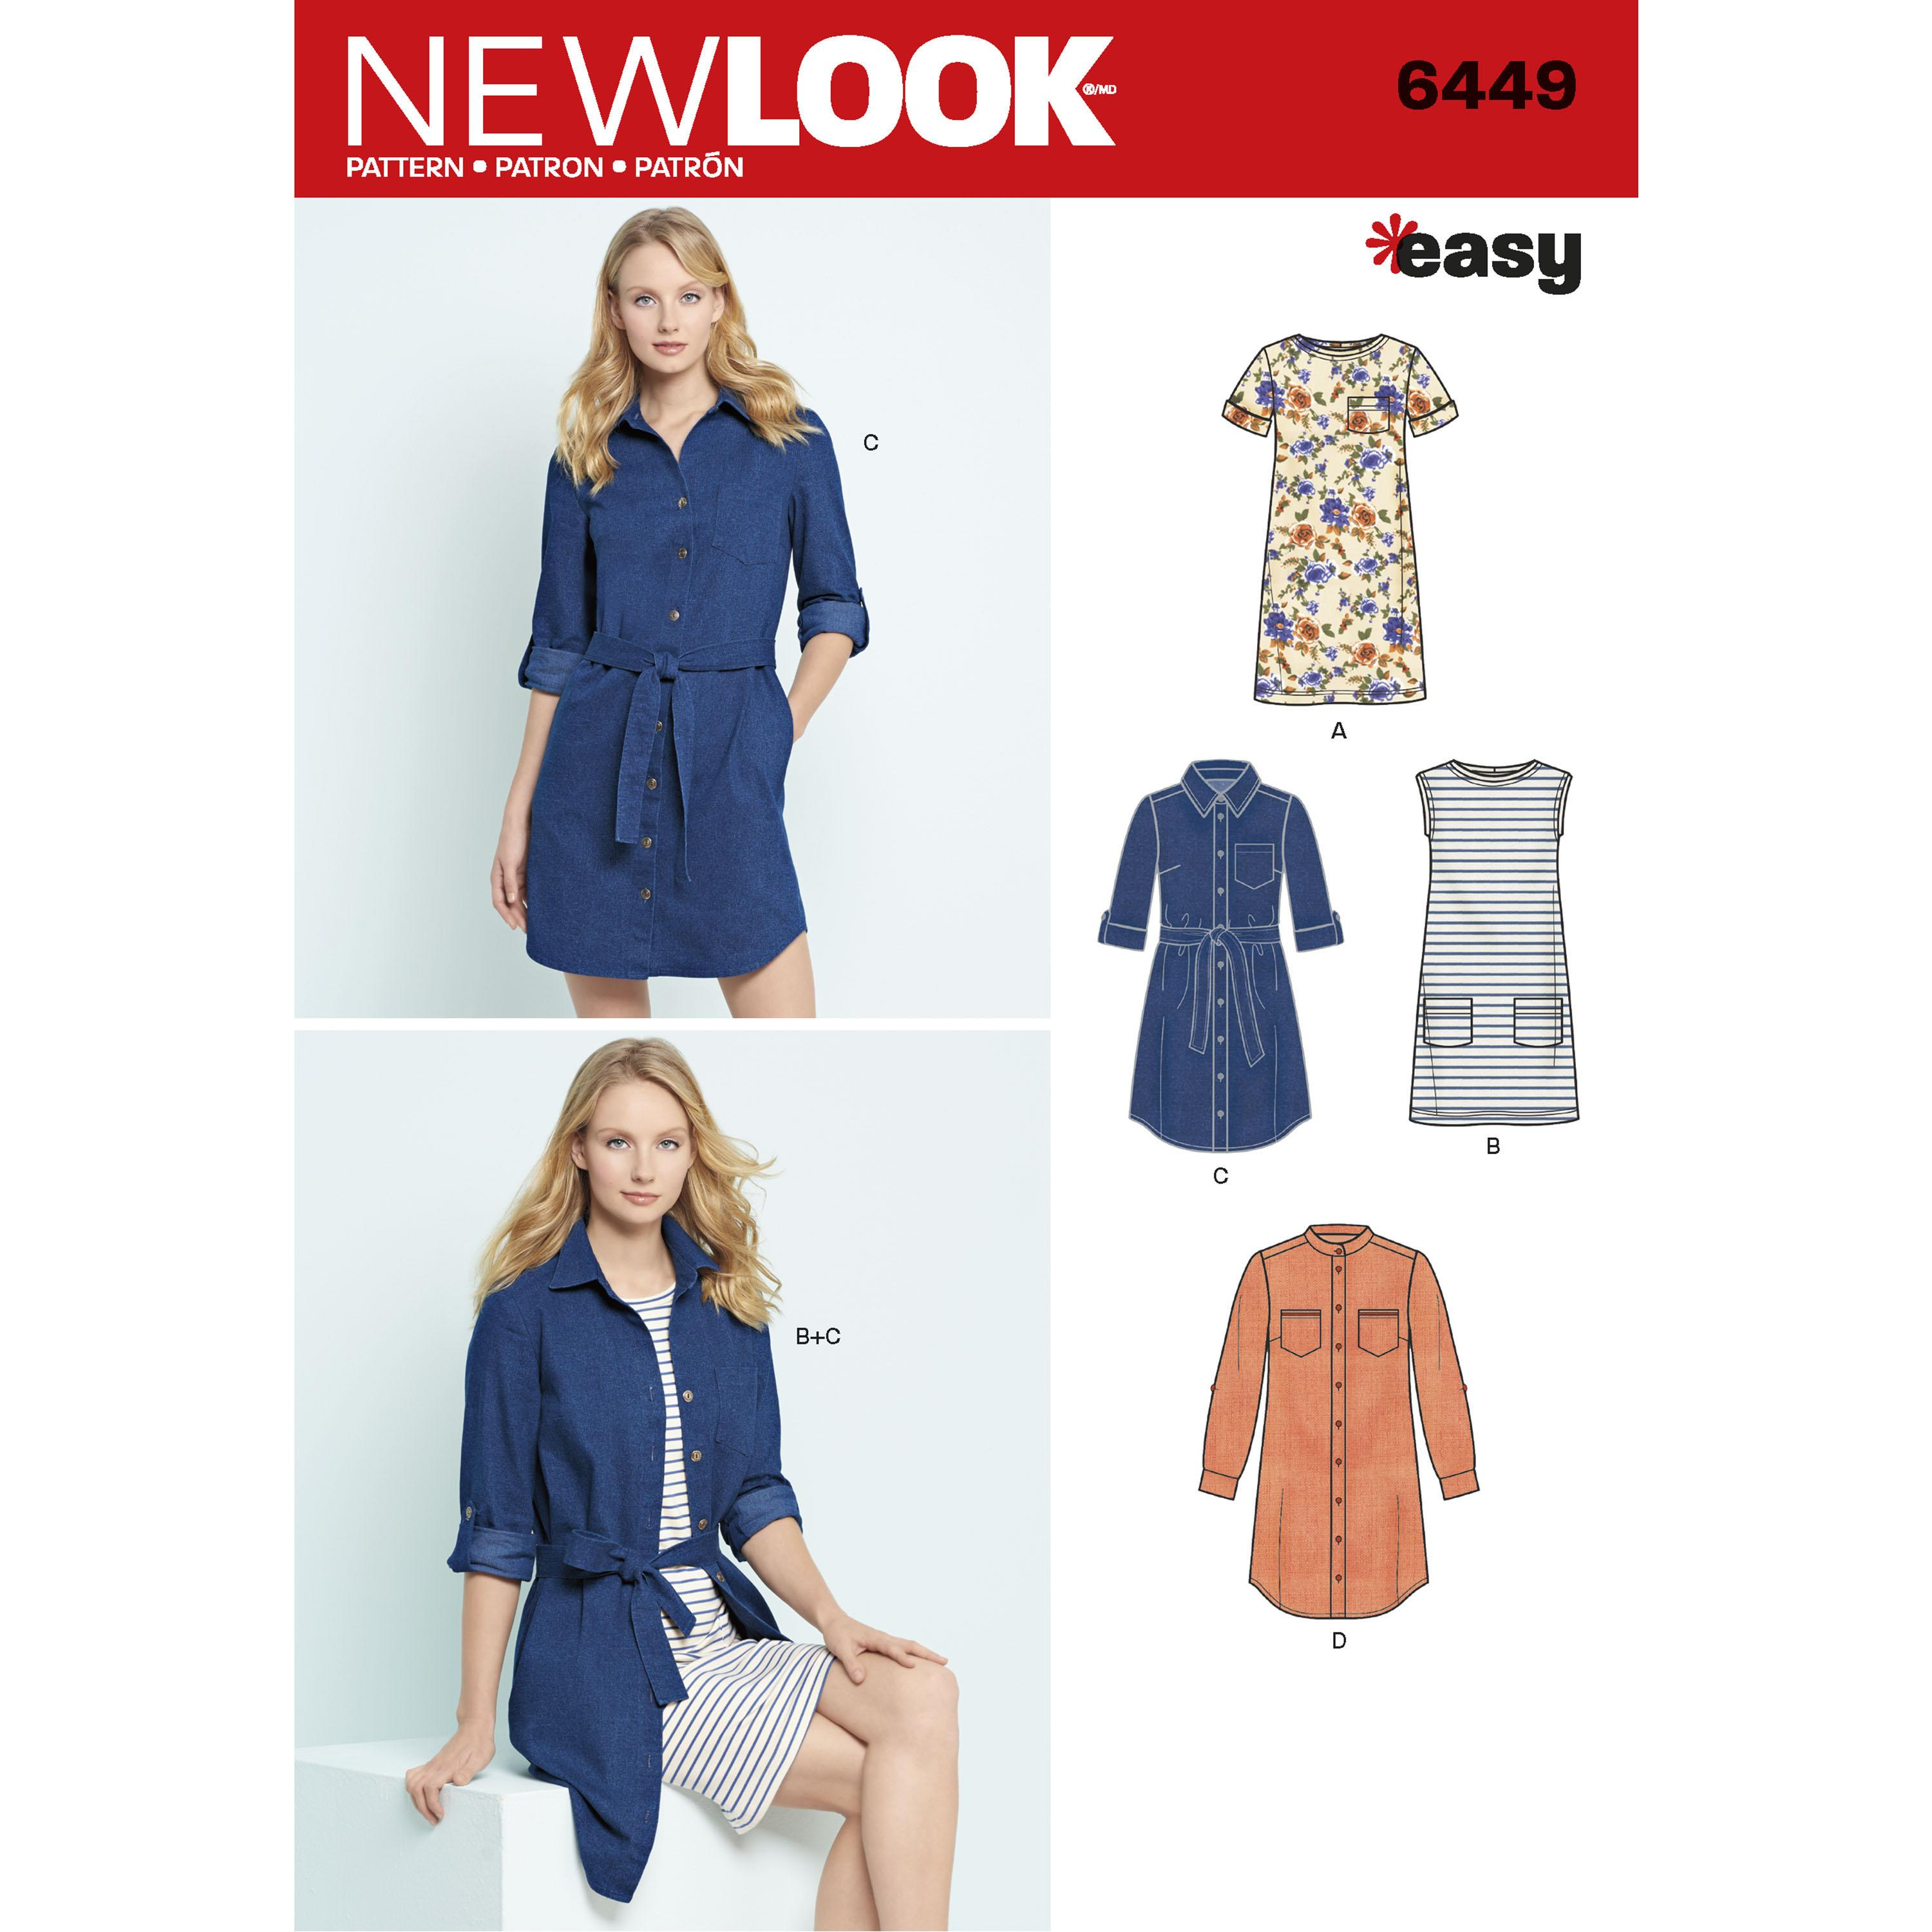 NewLook N6449 Misses' Easy Shirt Dress and Knit Dress